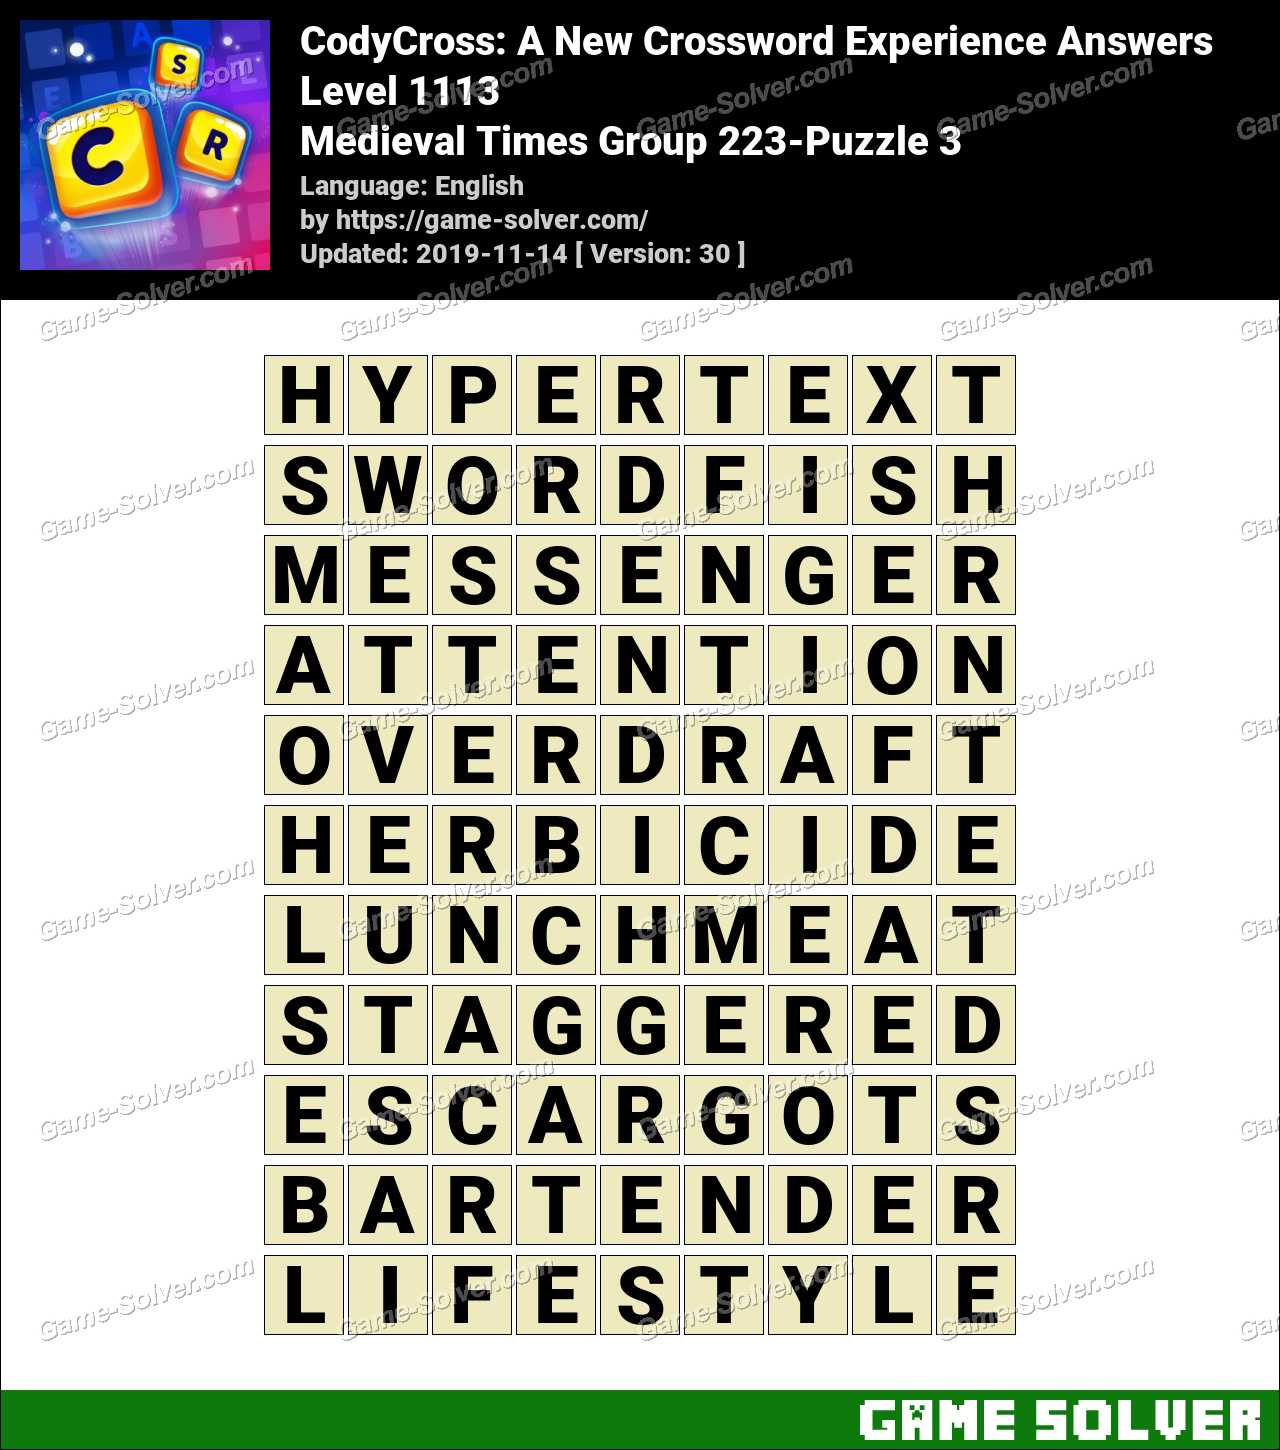 CodyCross Medieval Times Group 223-Puzzle 3 Answers